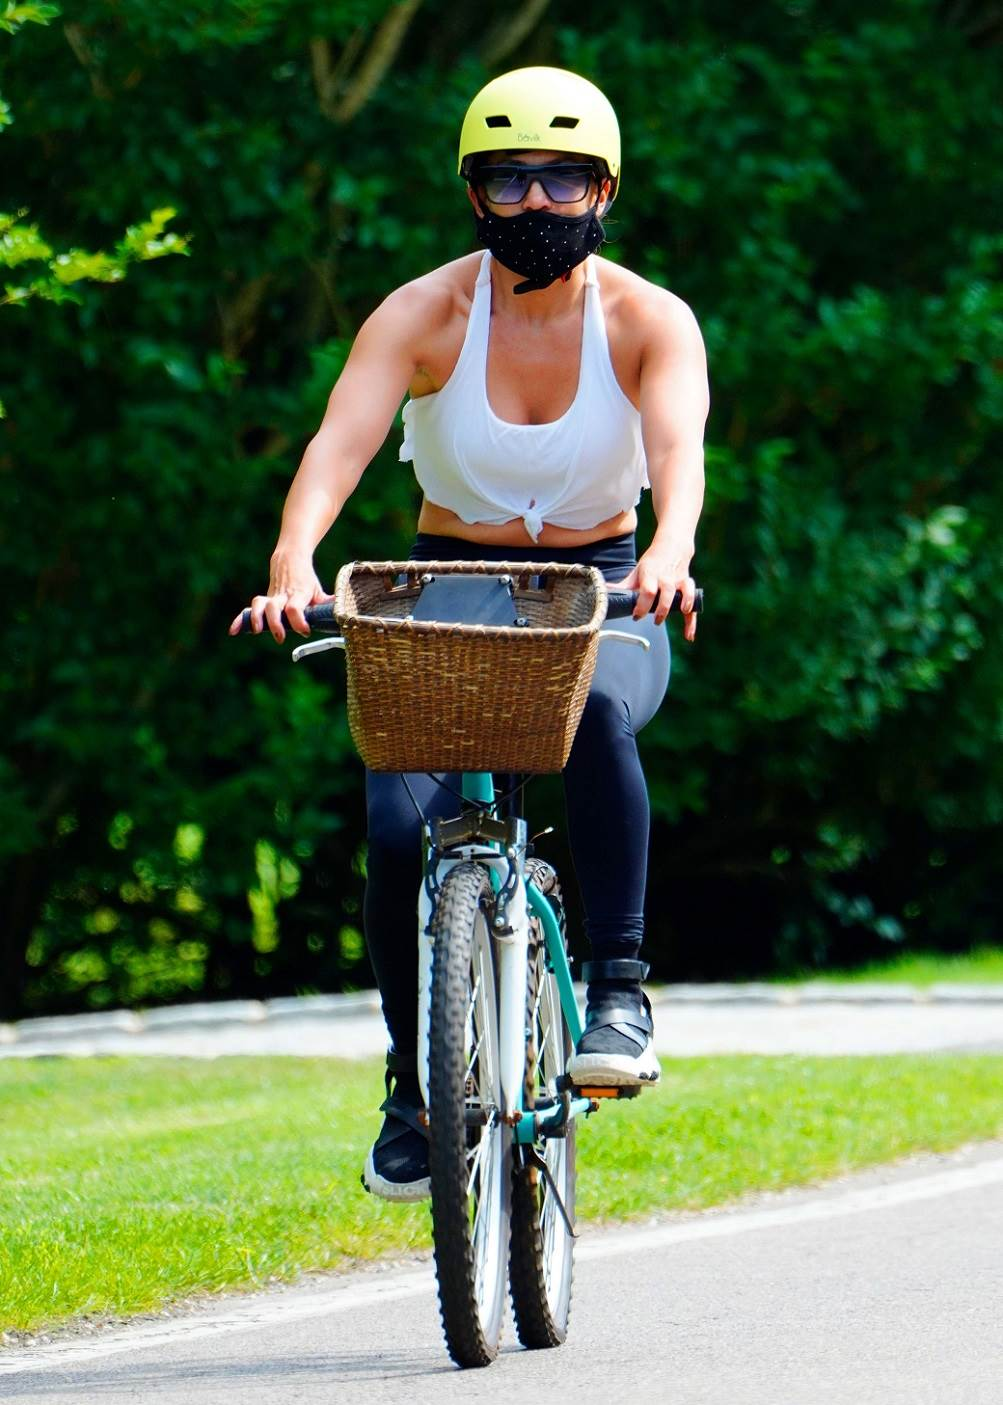 07/23/2020 Jennifer Lopez is pictured on a bike ride with a trainer ahead of her 51st birthday in The Hamptons. The pop star and actress wore a neon helmet, patterned face mask, cropped tank top, black leggings, and matching trainers.,Image: 546523374, License: Rights-managed, Restrictions: NO usage without agreed price and terms. Please contact sales@theimagedirect.com, Model Release: no, Credit line: TheImageDirect.com / The Image Direct / Profimedia